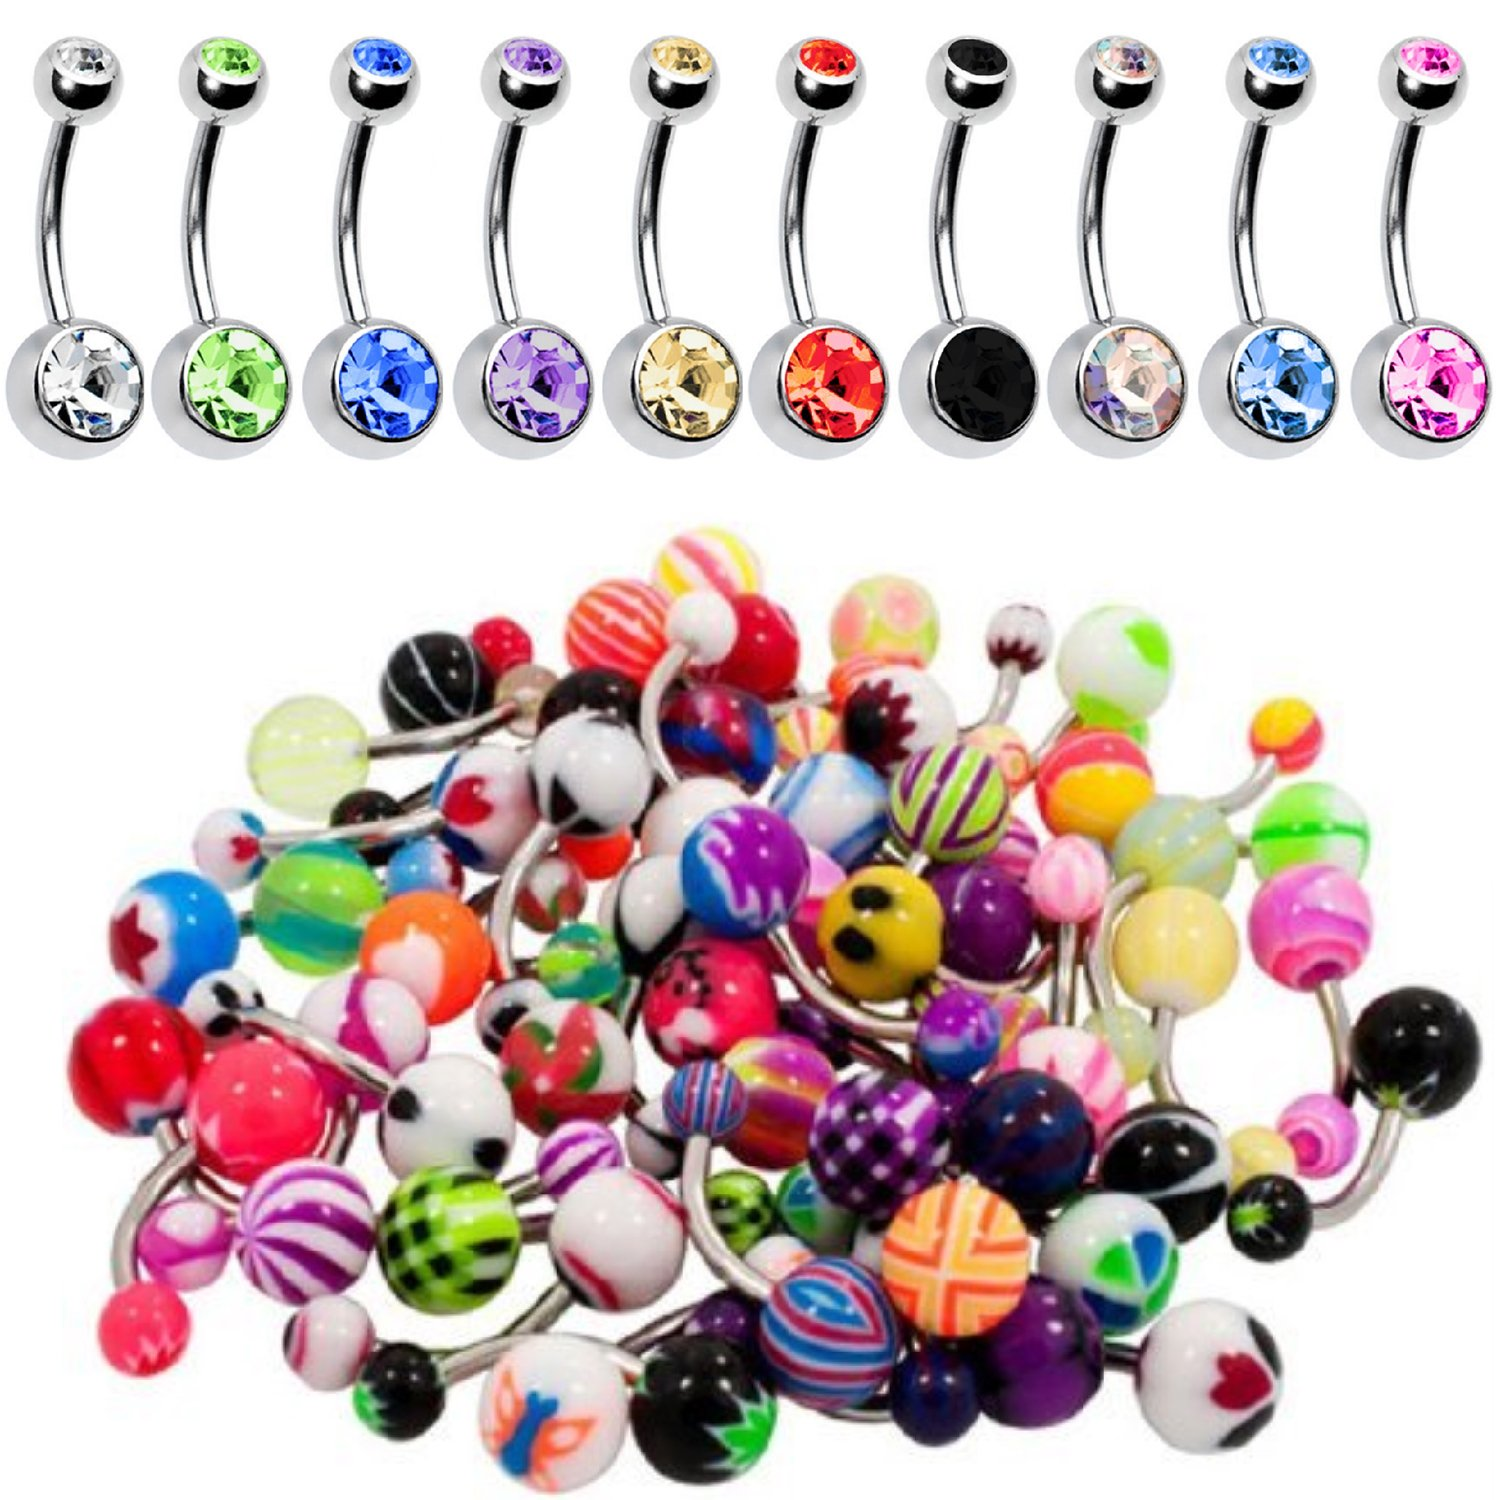 BodyJ4You 60PC Belly Button Ring Set 14G Mix CZ Steel Acrylic Bioflex Banana Bar Body Piercing Jewelry BN1520